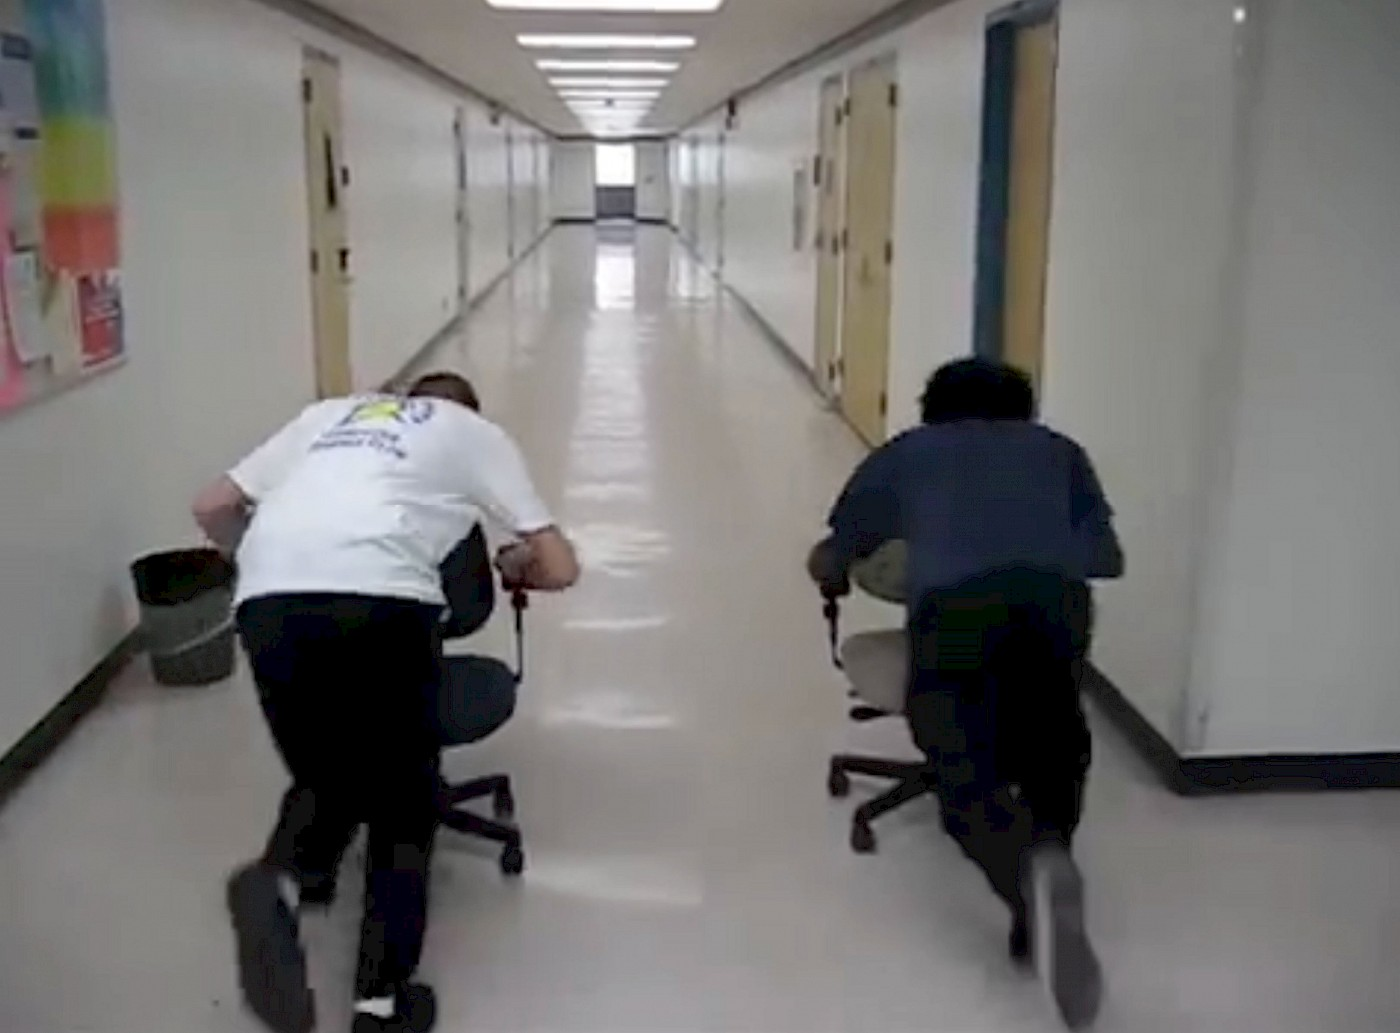 [hallway office chair racing](https://youtu.be/dlH6JhtkqBo)